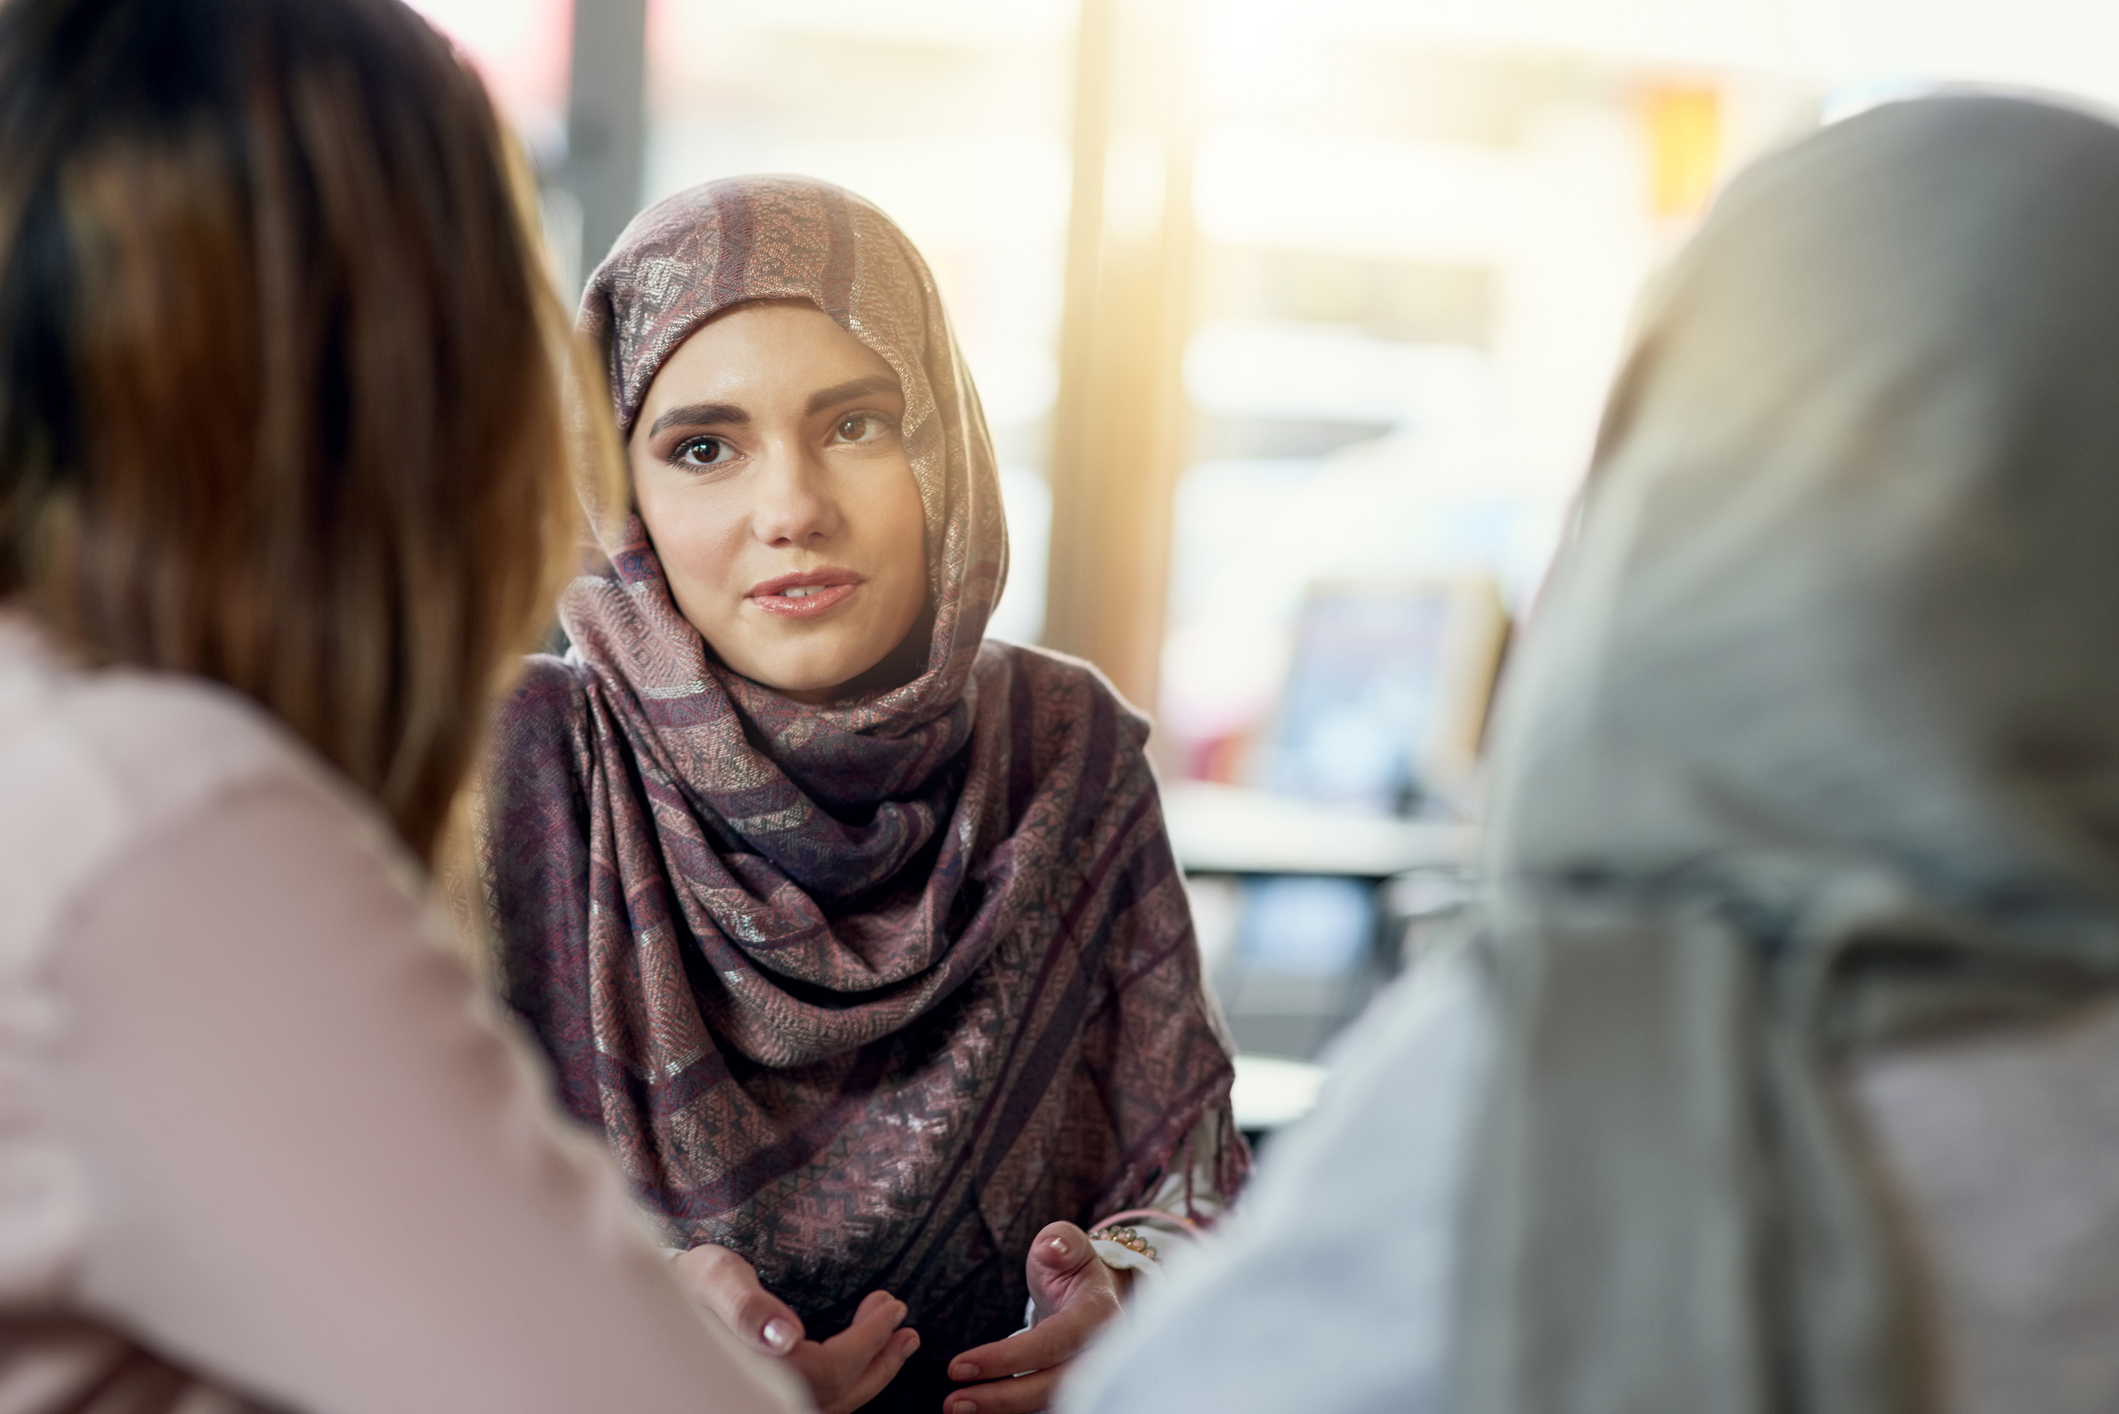 stock photo of two Muslim women talking to third women